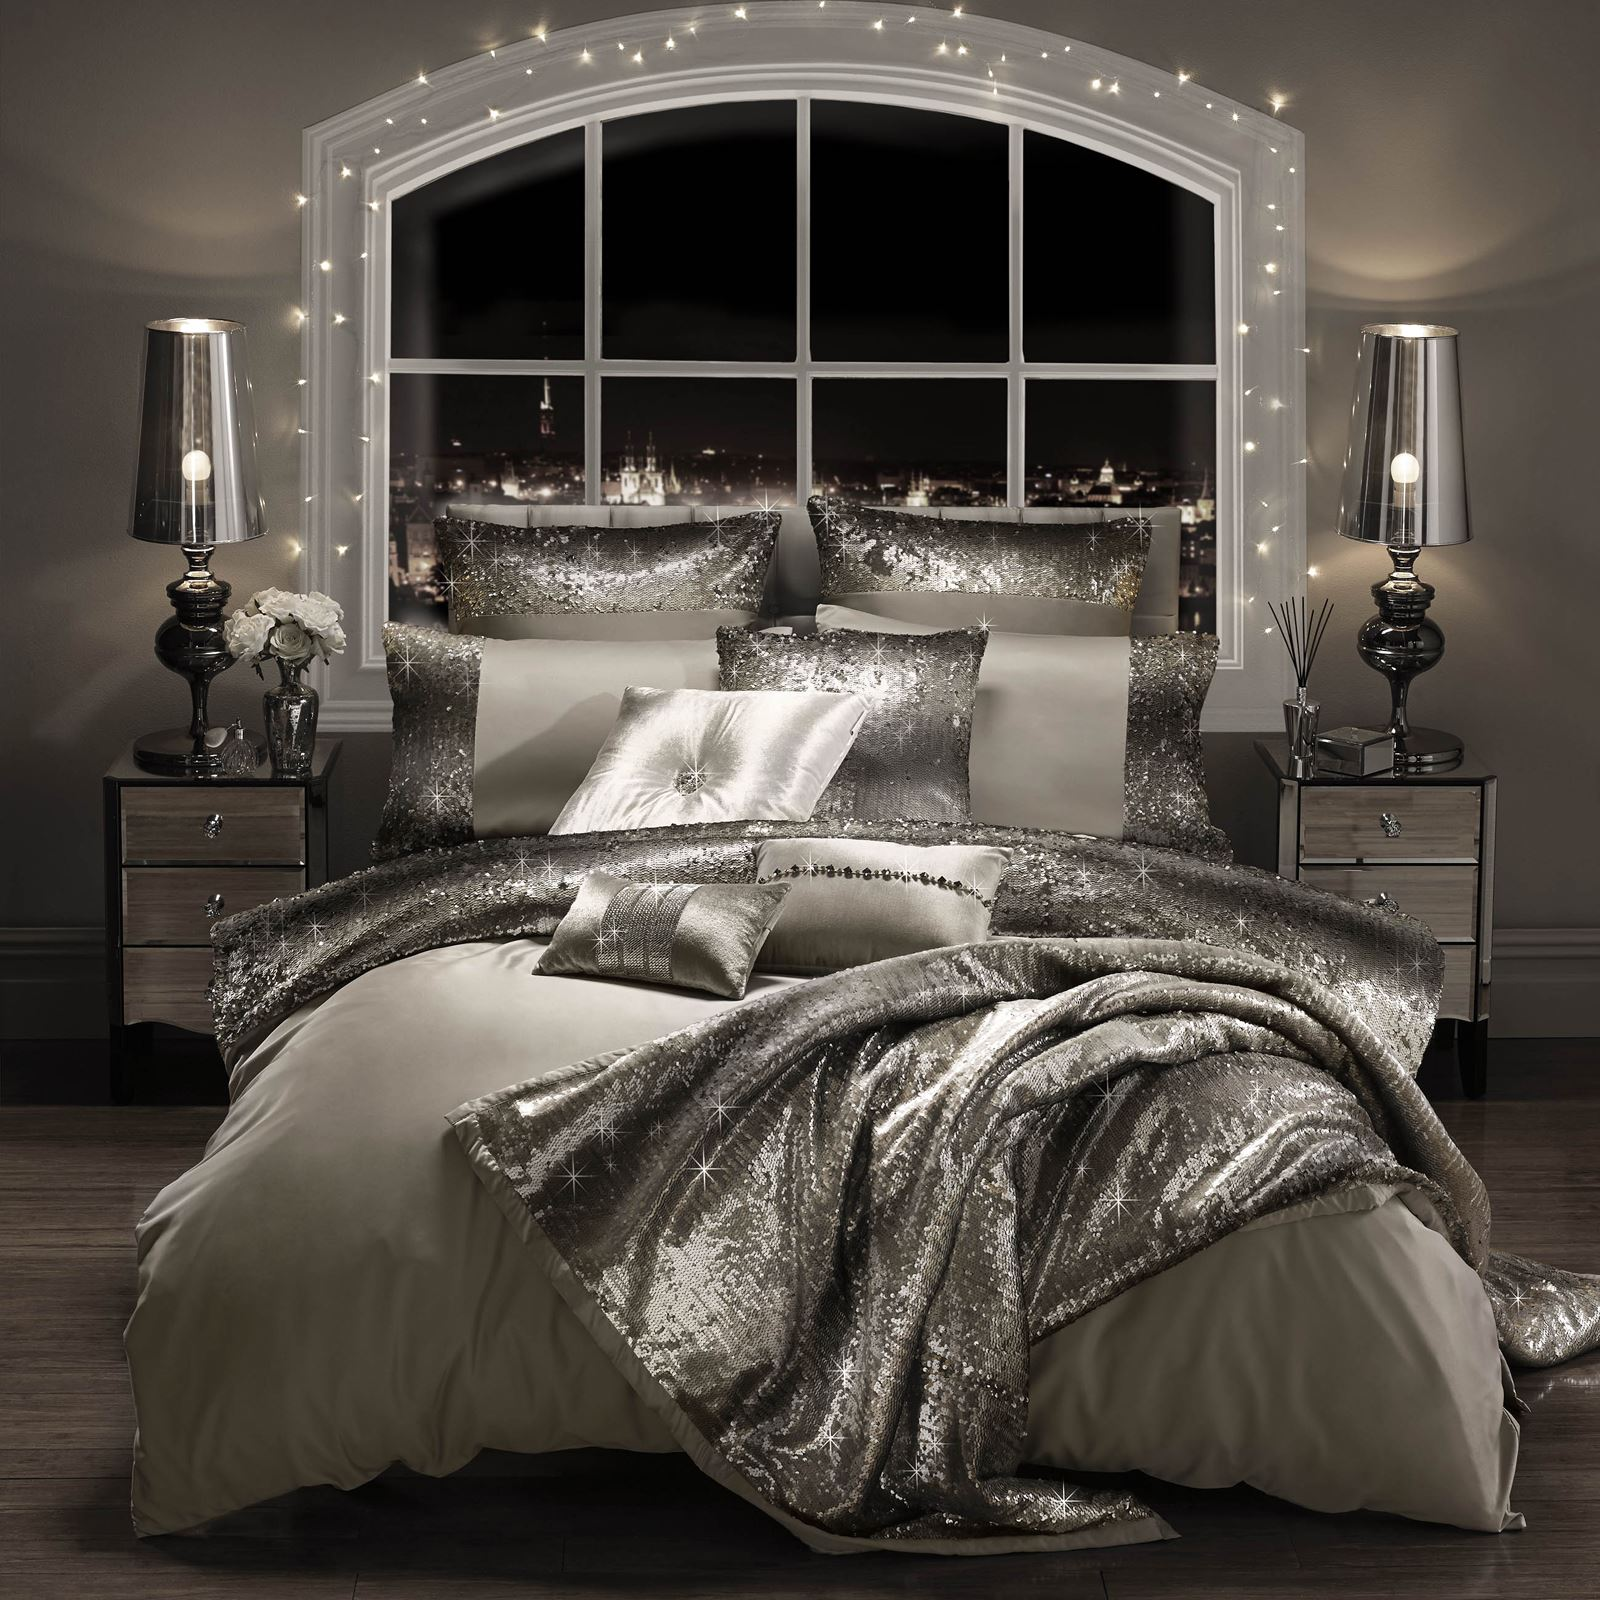 Bedroom Decorating Ideas Black And Silver